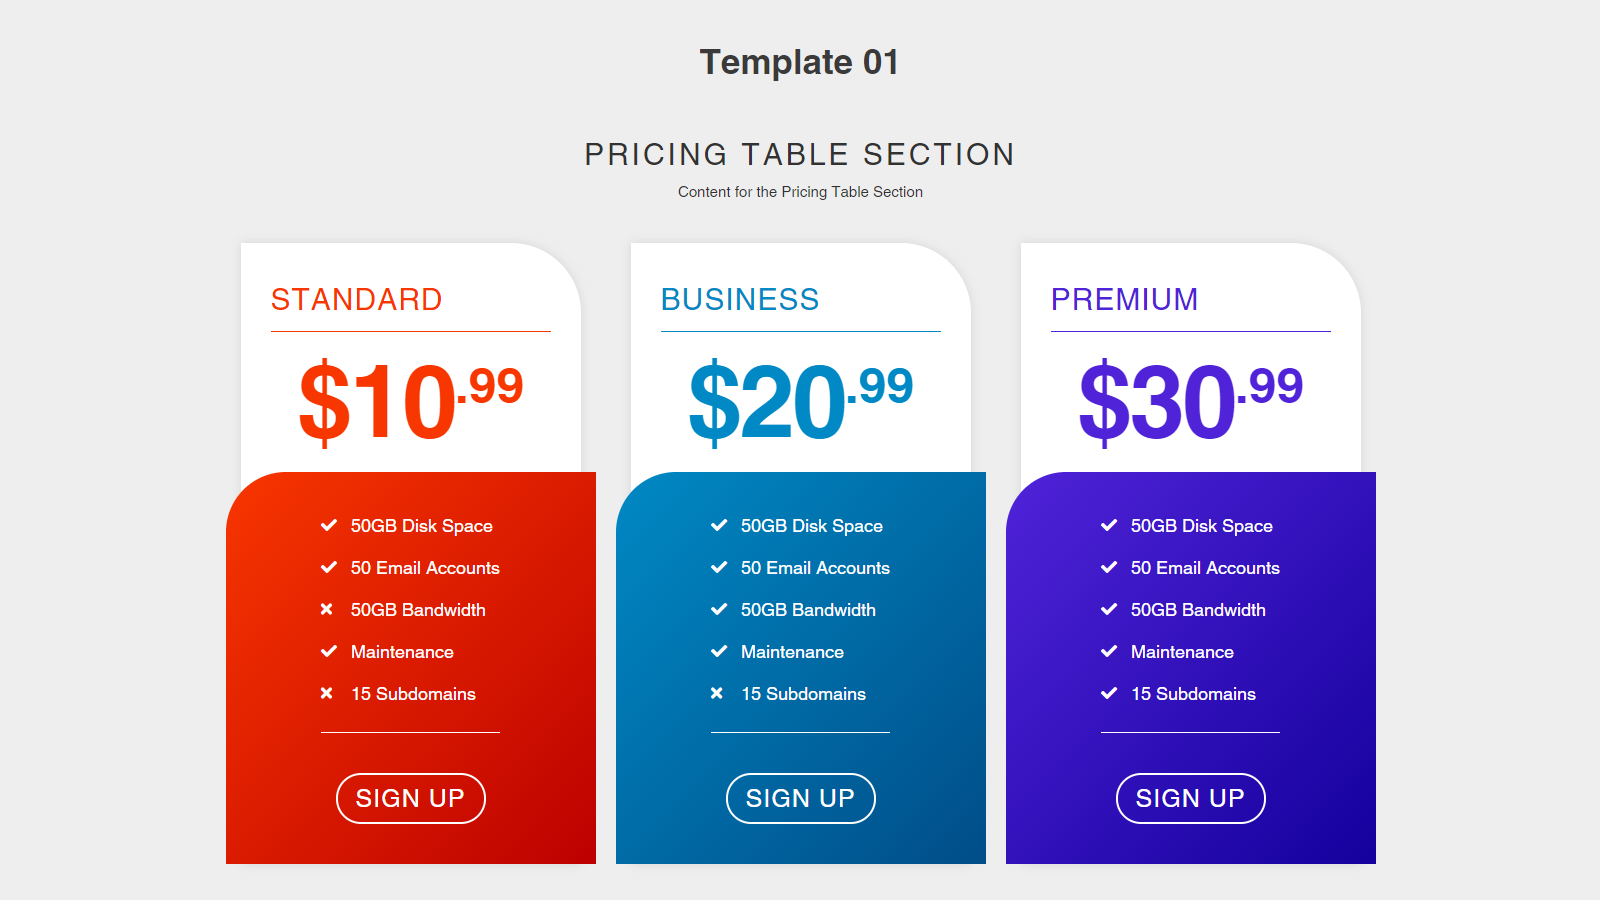 Pricing Table 01